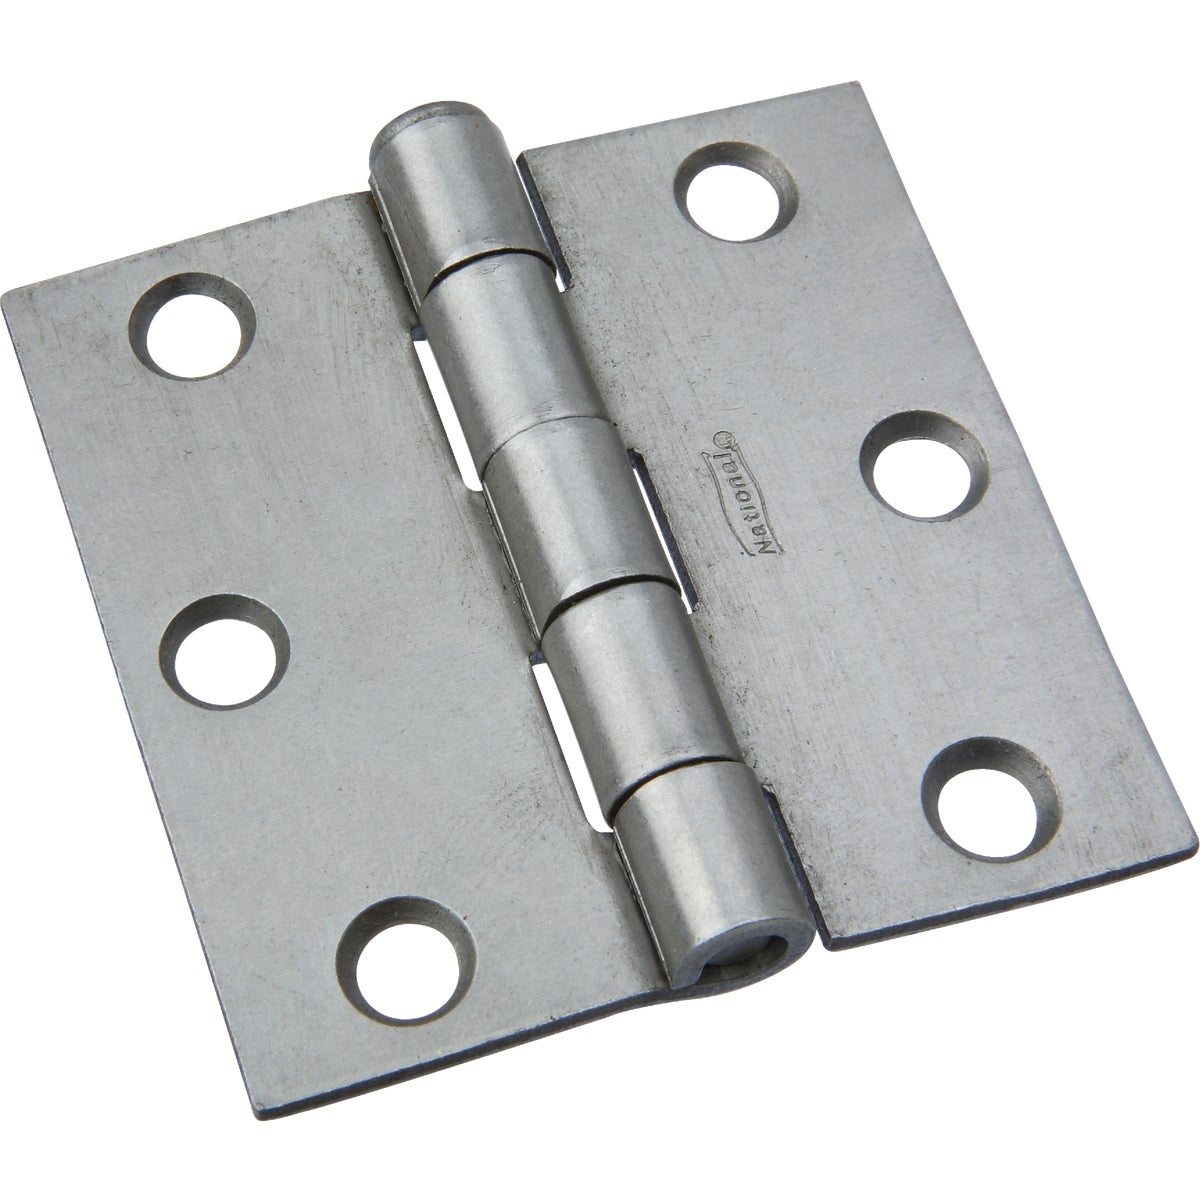 "2-1/2"" BROAD HINGE - N139733 by National Mfg Co"